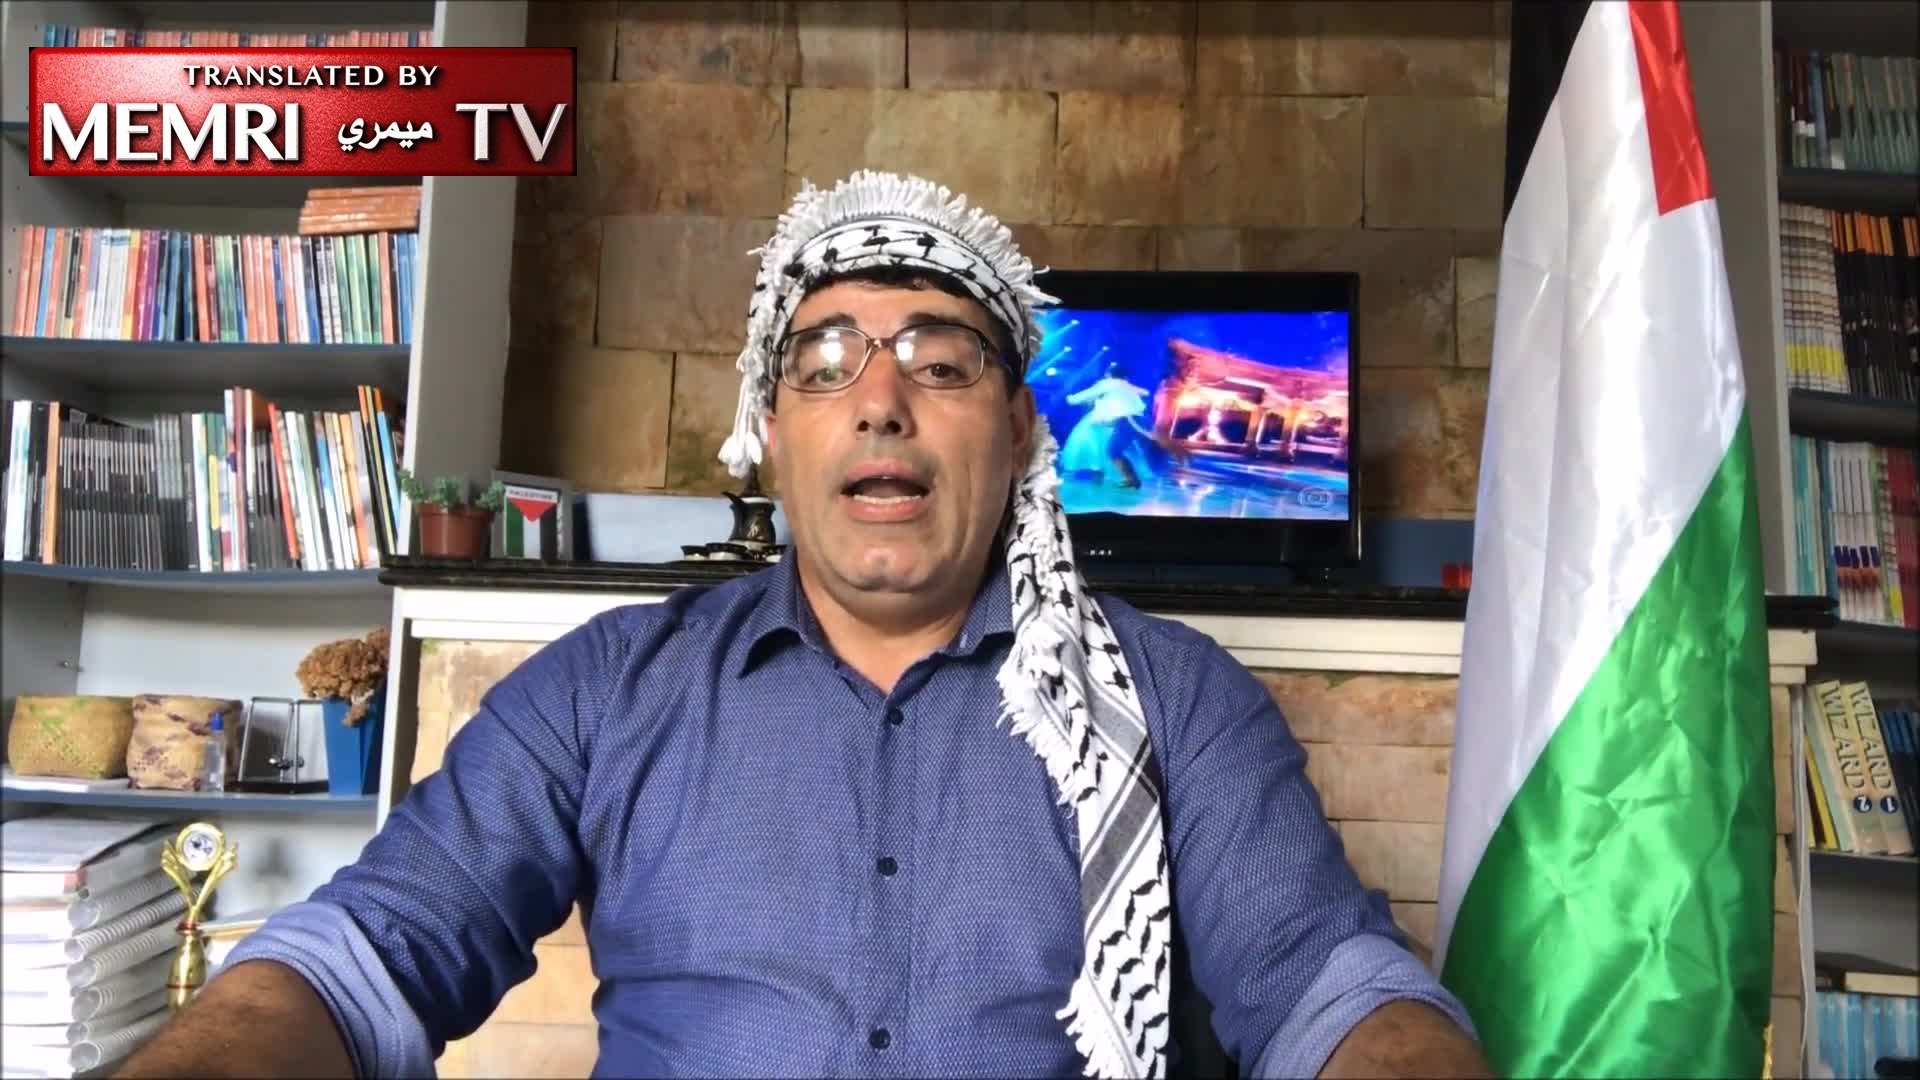 Brazilian Politician Jamal Harfoush Slams KSA, Gulf States for Allegedly Supporting U.S. Embassy Move to Jerusalem: Pigs and Apes, Offspring of Mordechai! (Archival)